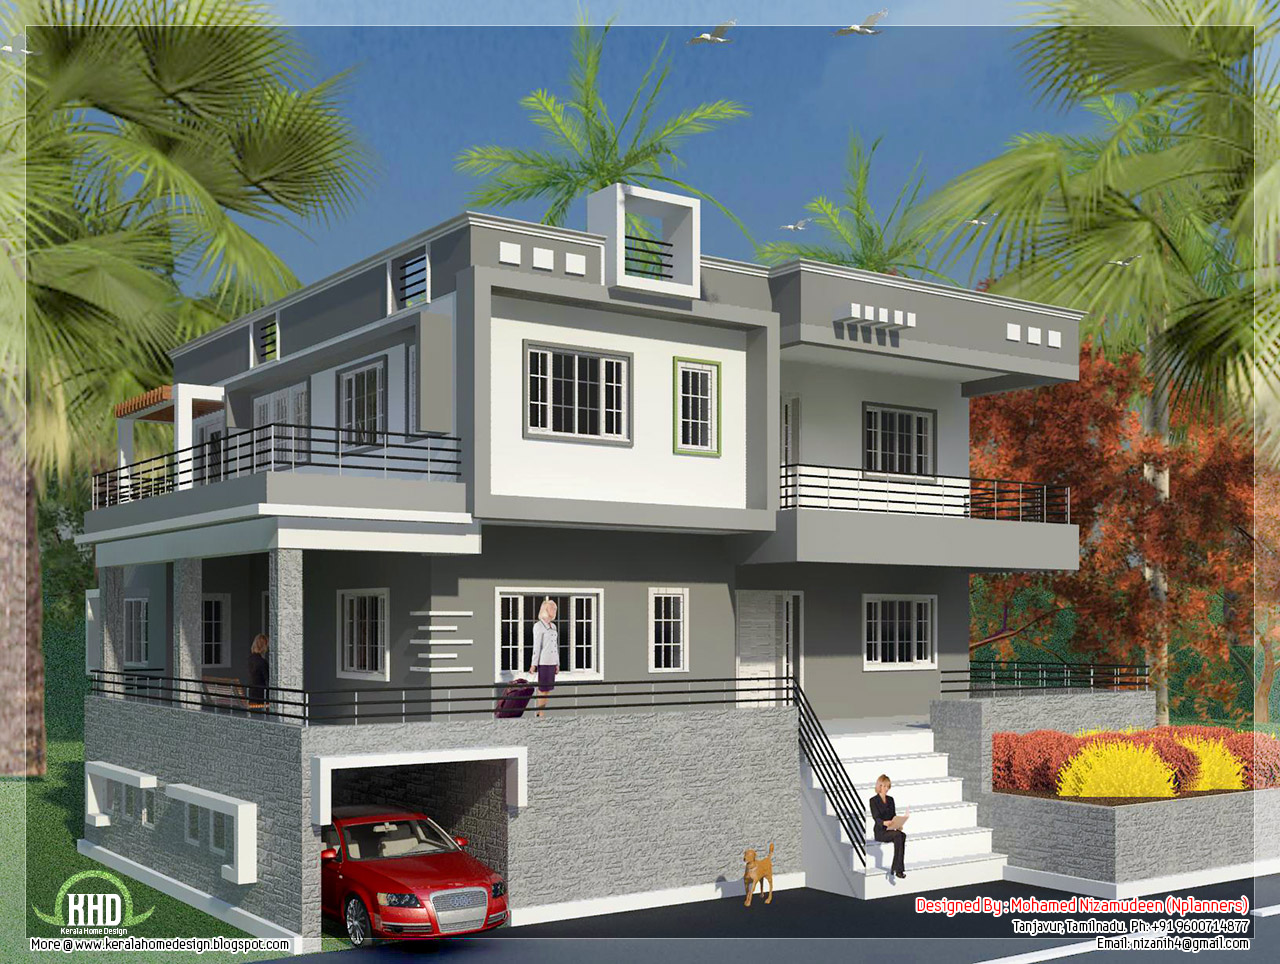 North indian style minimalist house exterior design Indian house front design photo